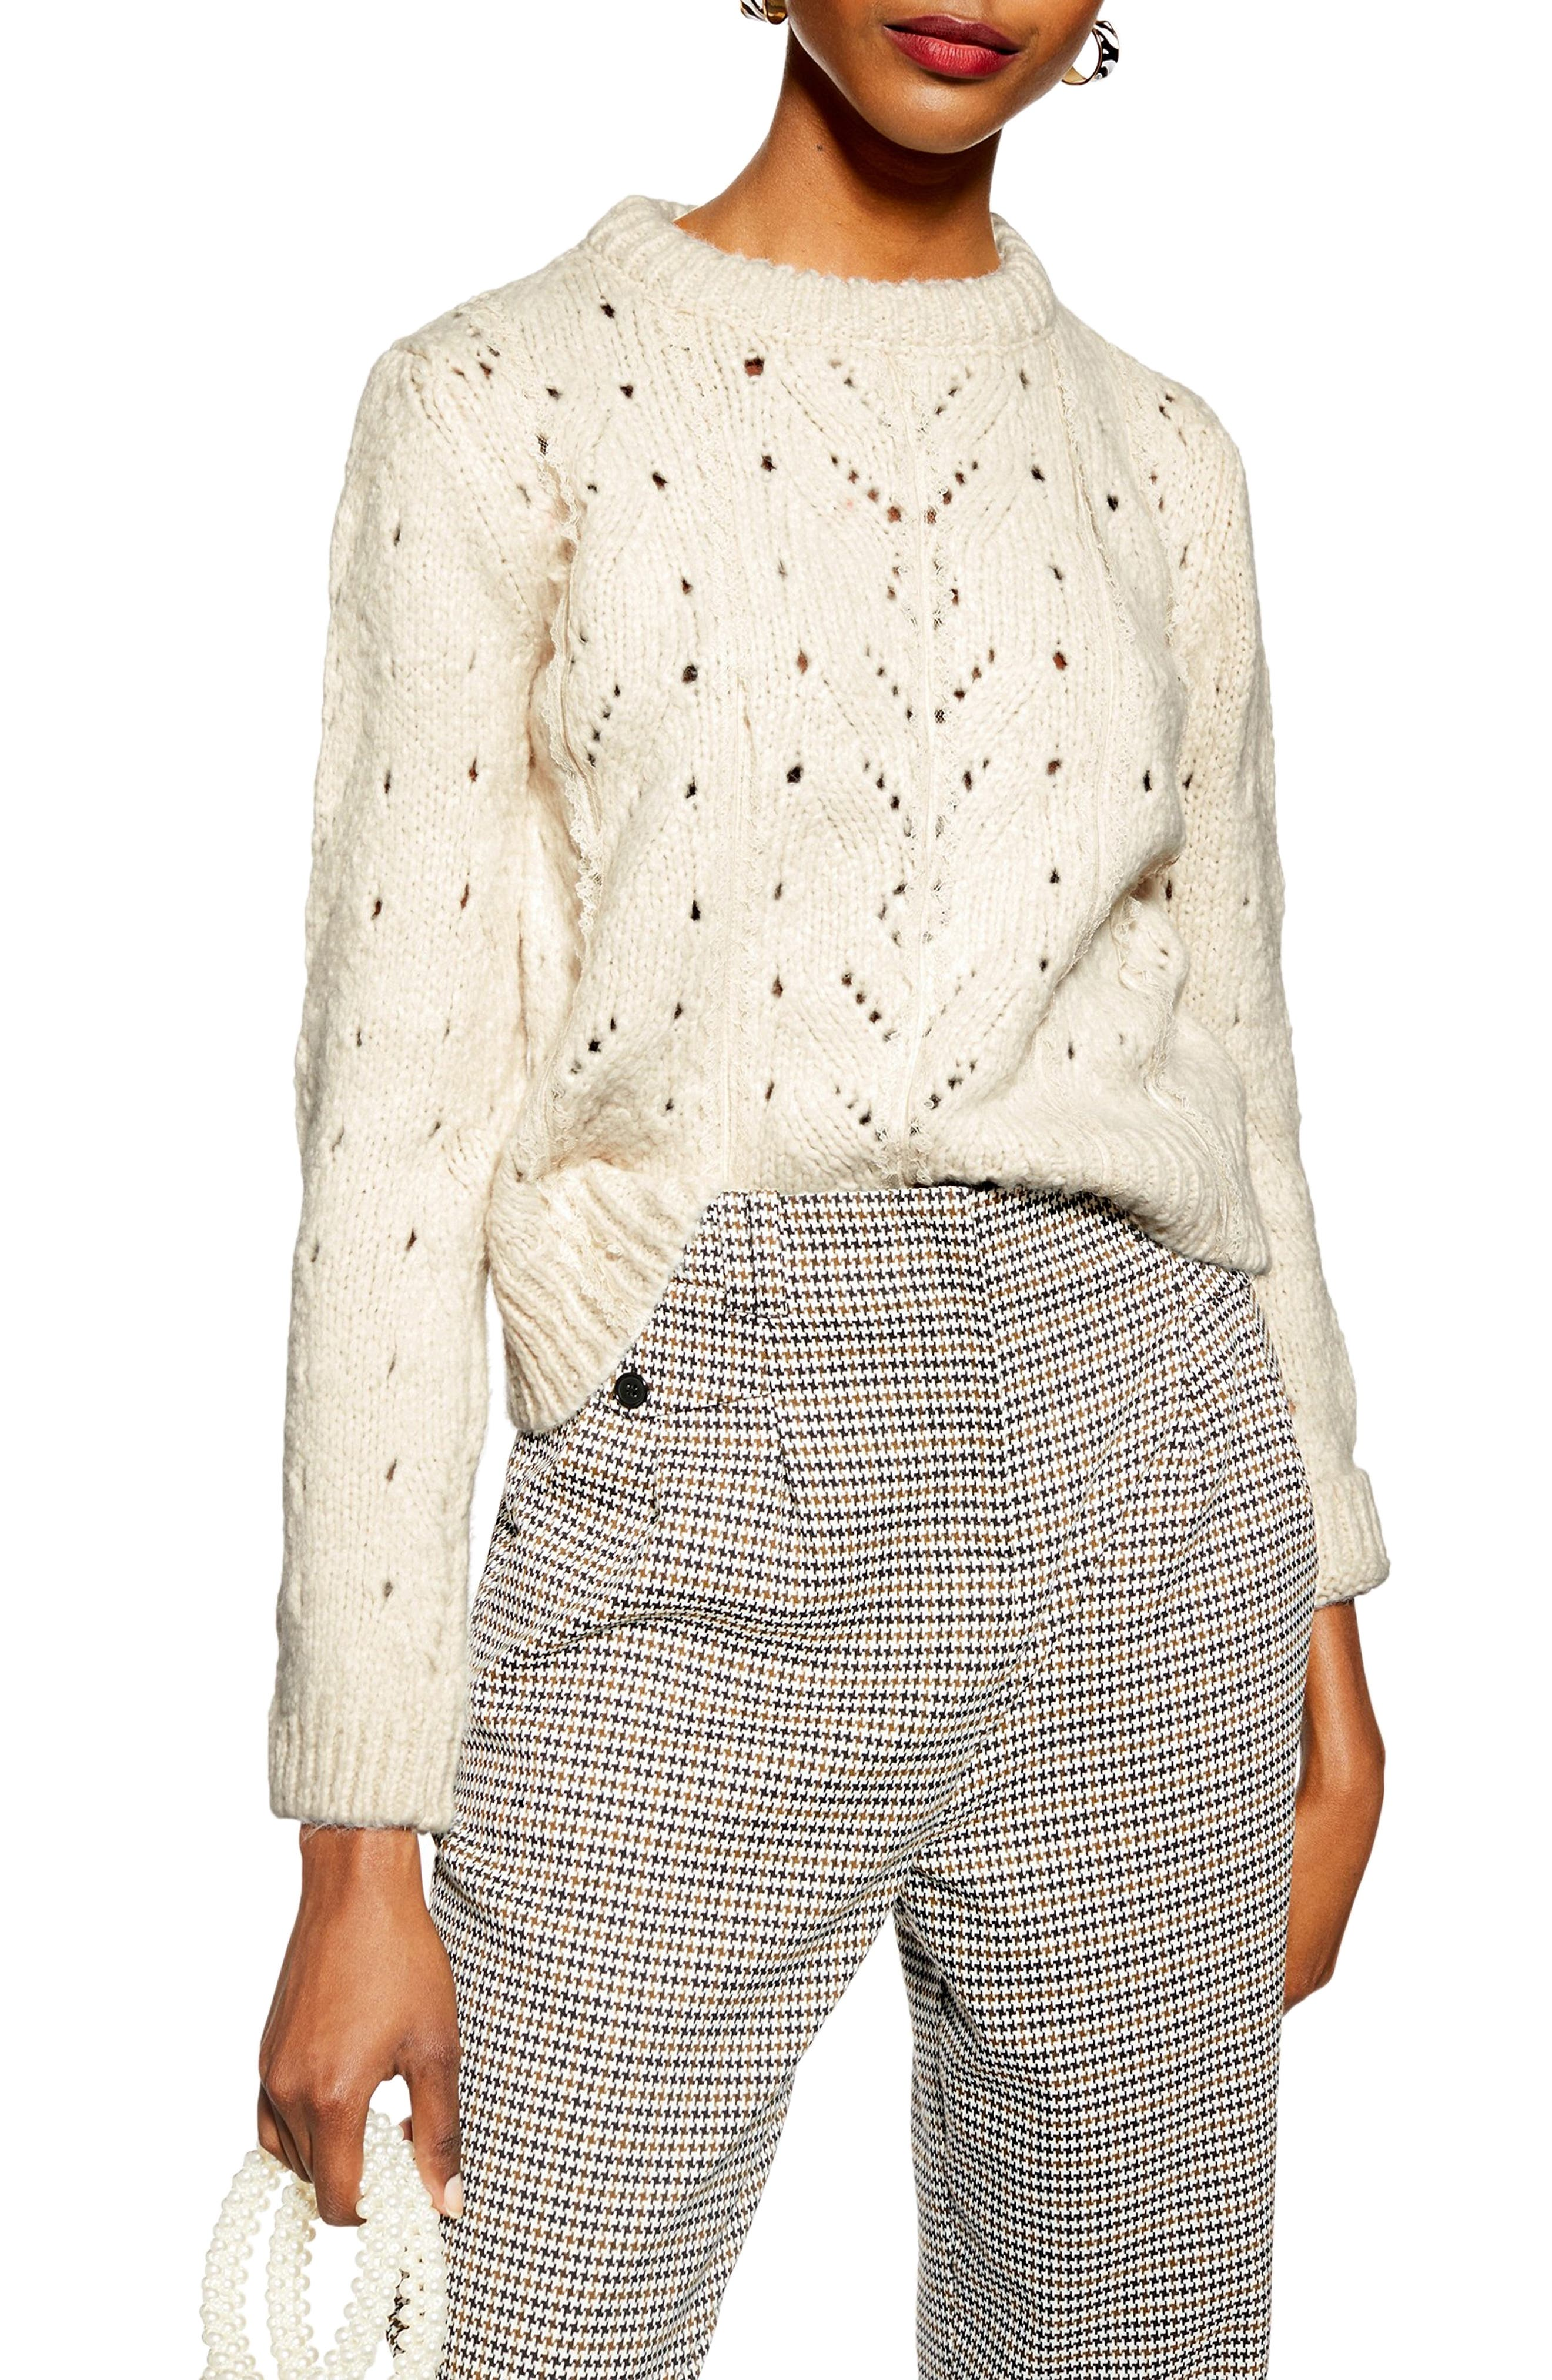 TOPSHOP, Pointelle Lace Sweater, Main thumbnail 1, color, IVORY